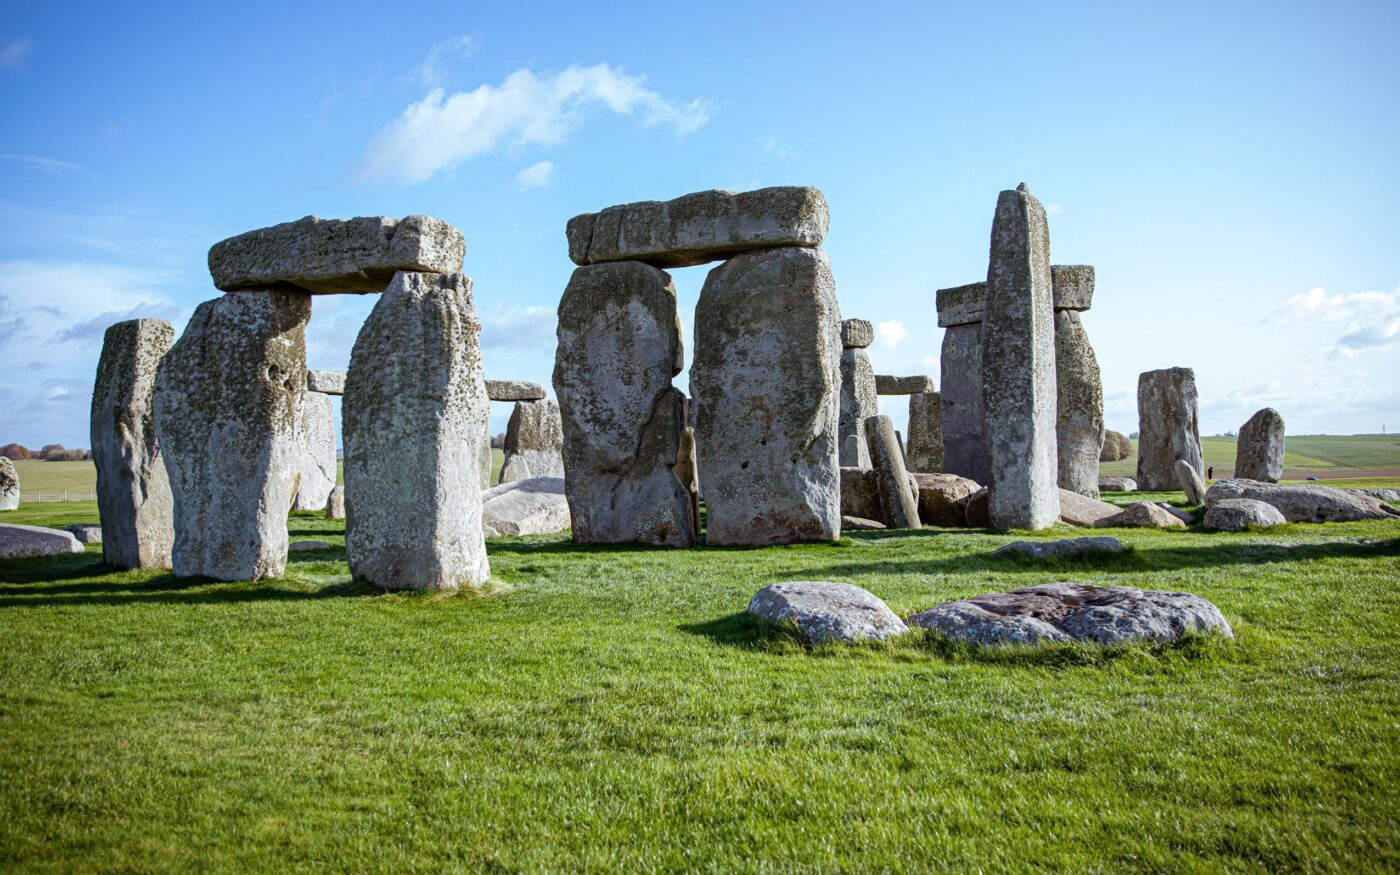 English Heritage: The Top 11 Sites You Need to Visit